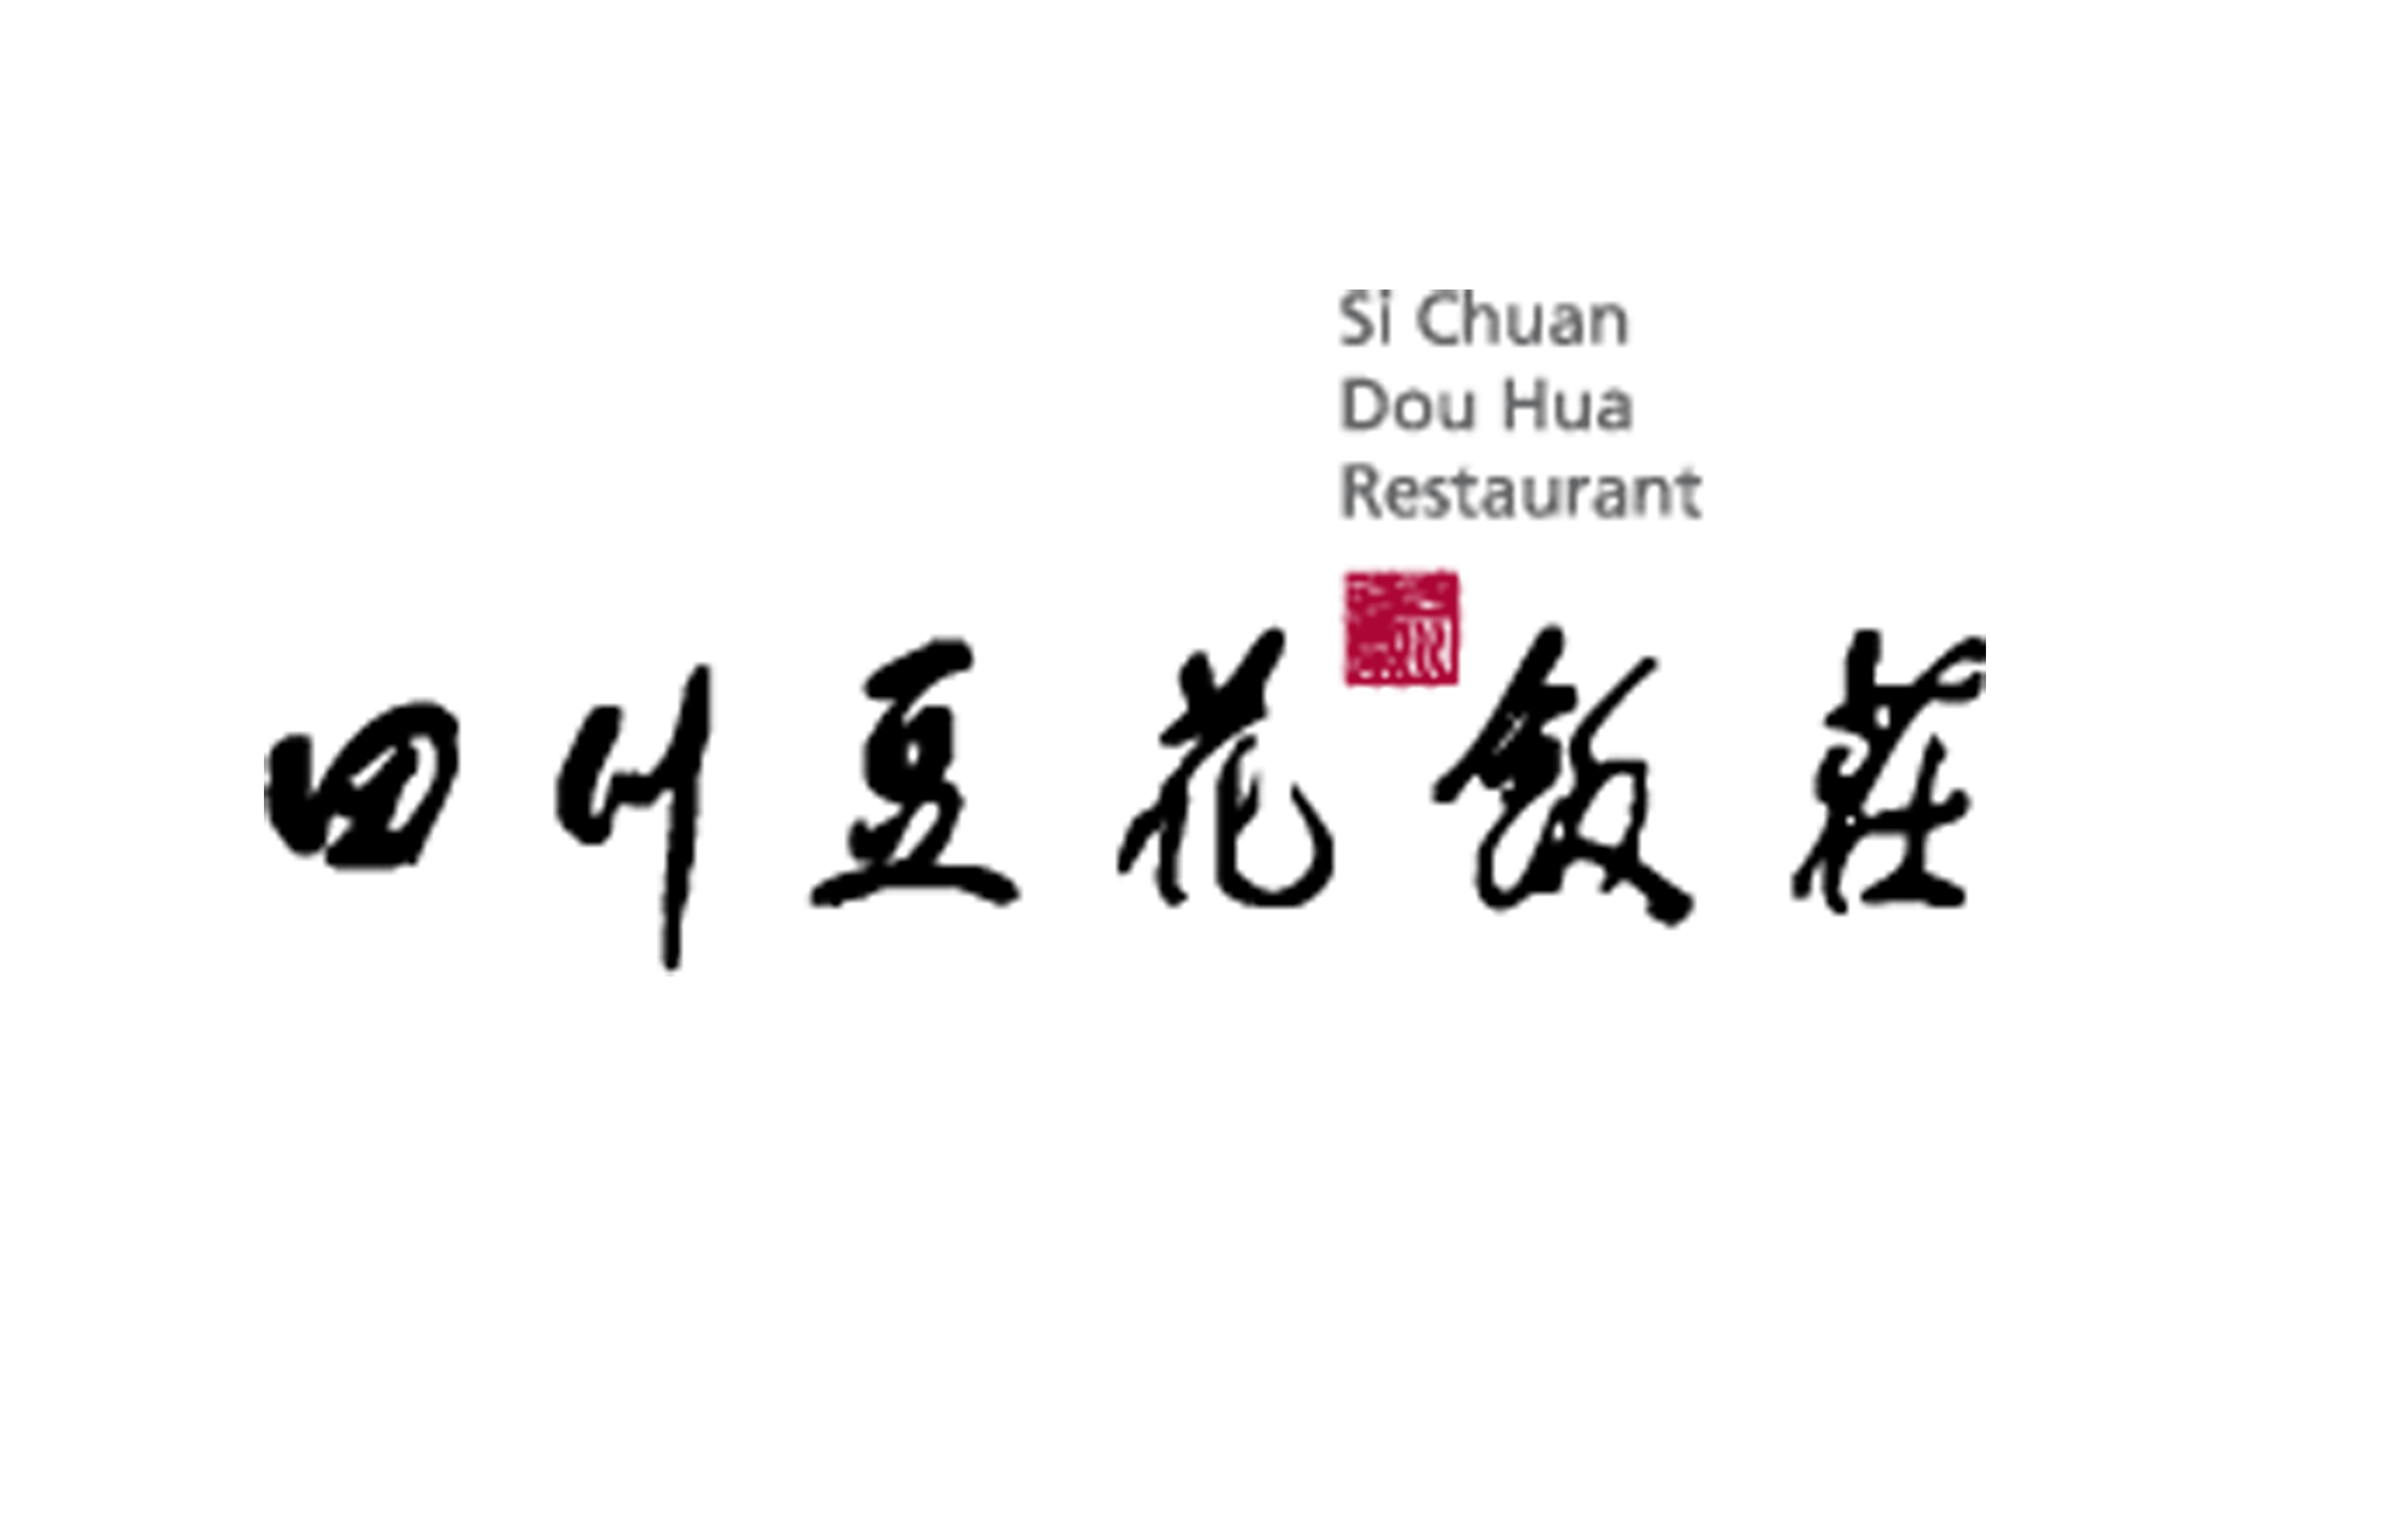 Si Chuan Dou Hua Restaurant @ PARKROYAL on Kitchener Road: 20% Off